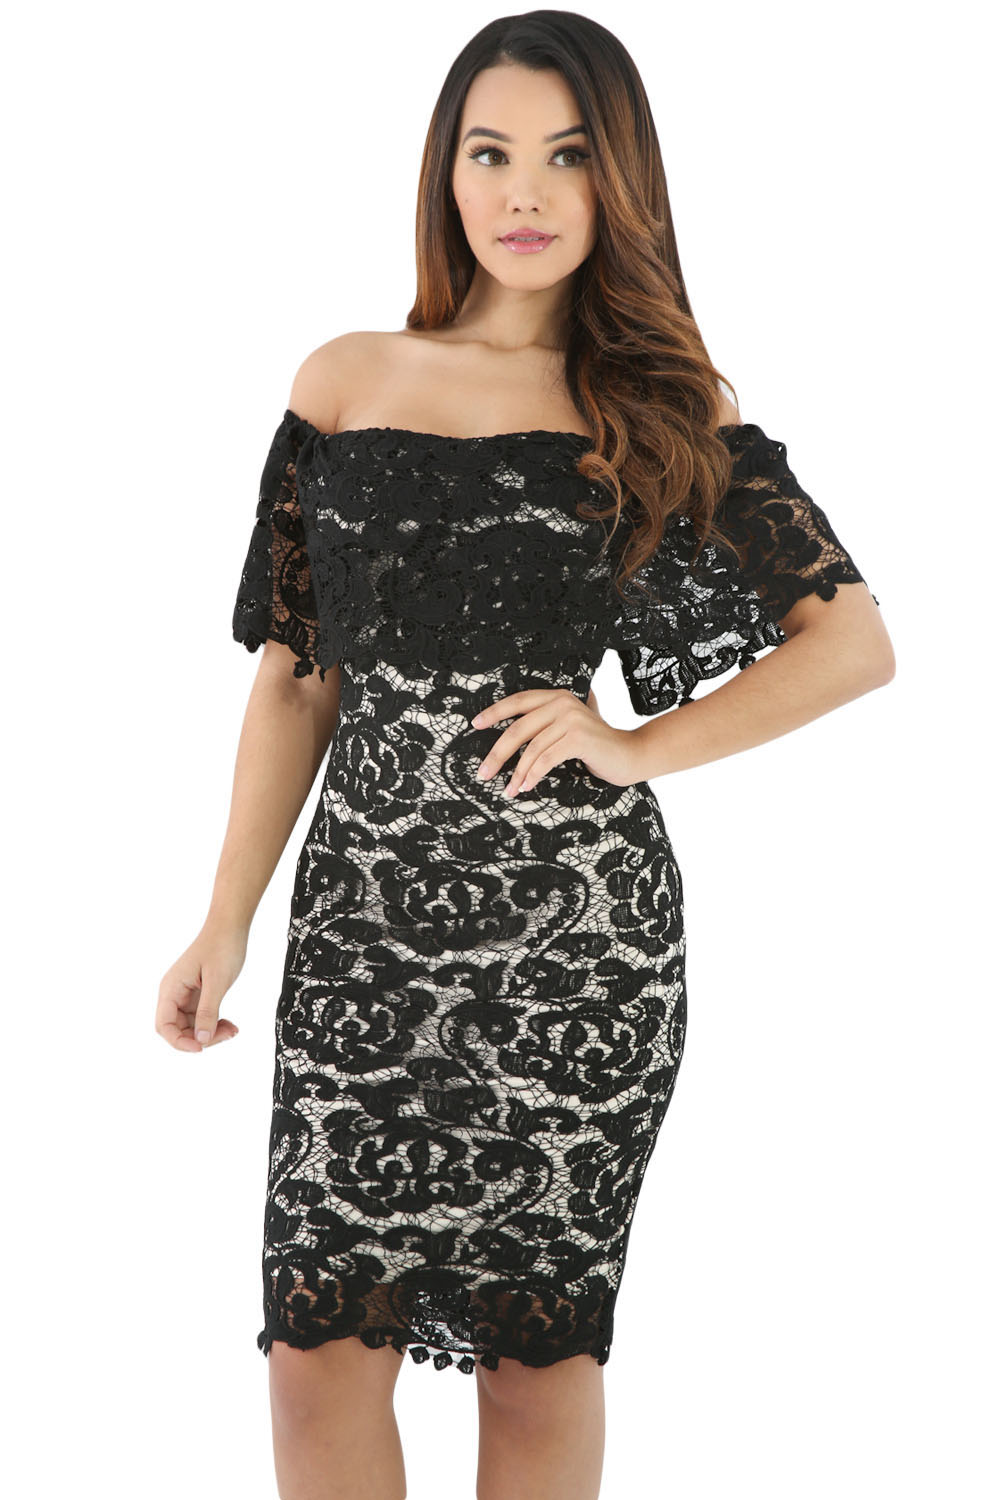 f4c1e7ae9c63 Black Lace Off Shoulder Bodycon Dress – Charming Wear